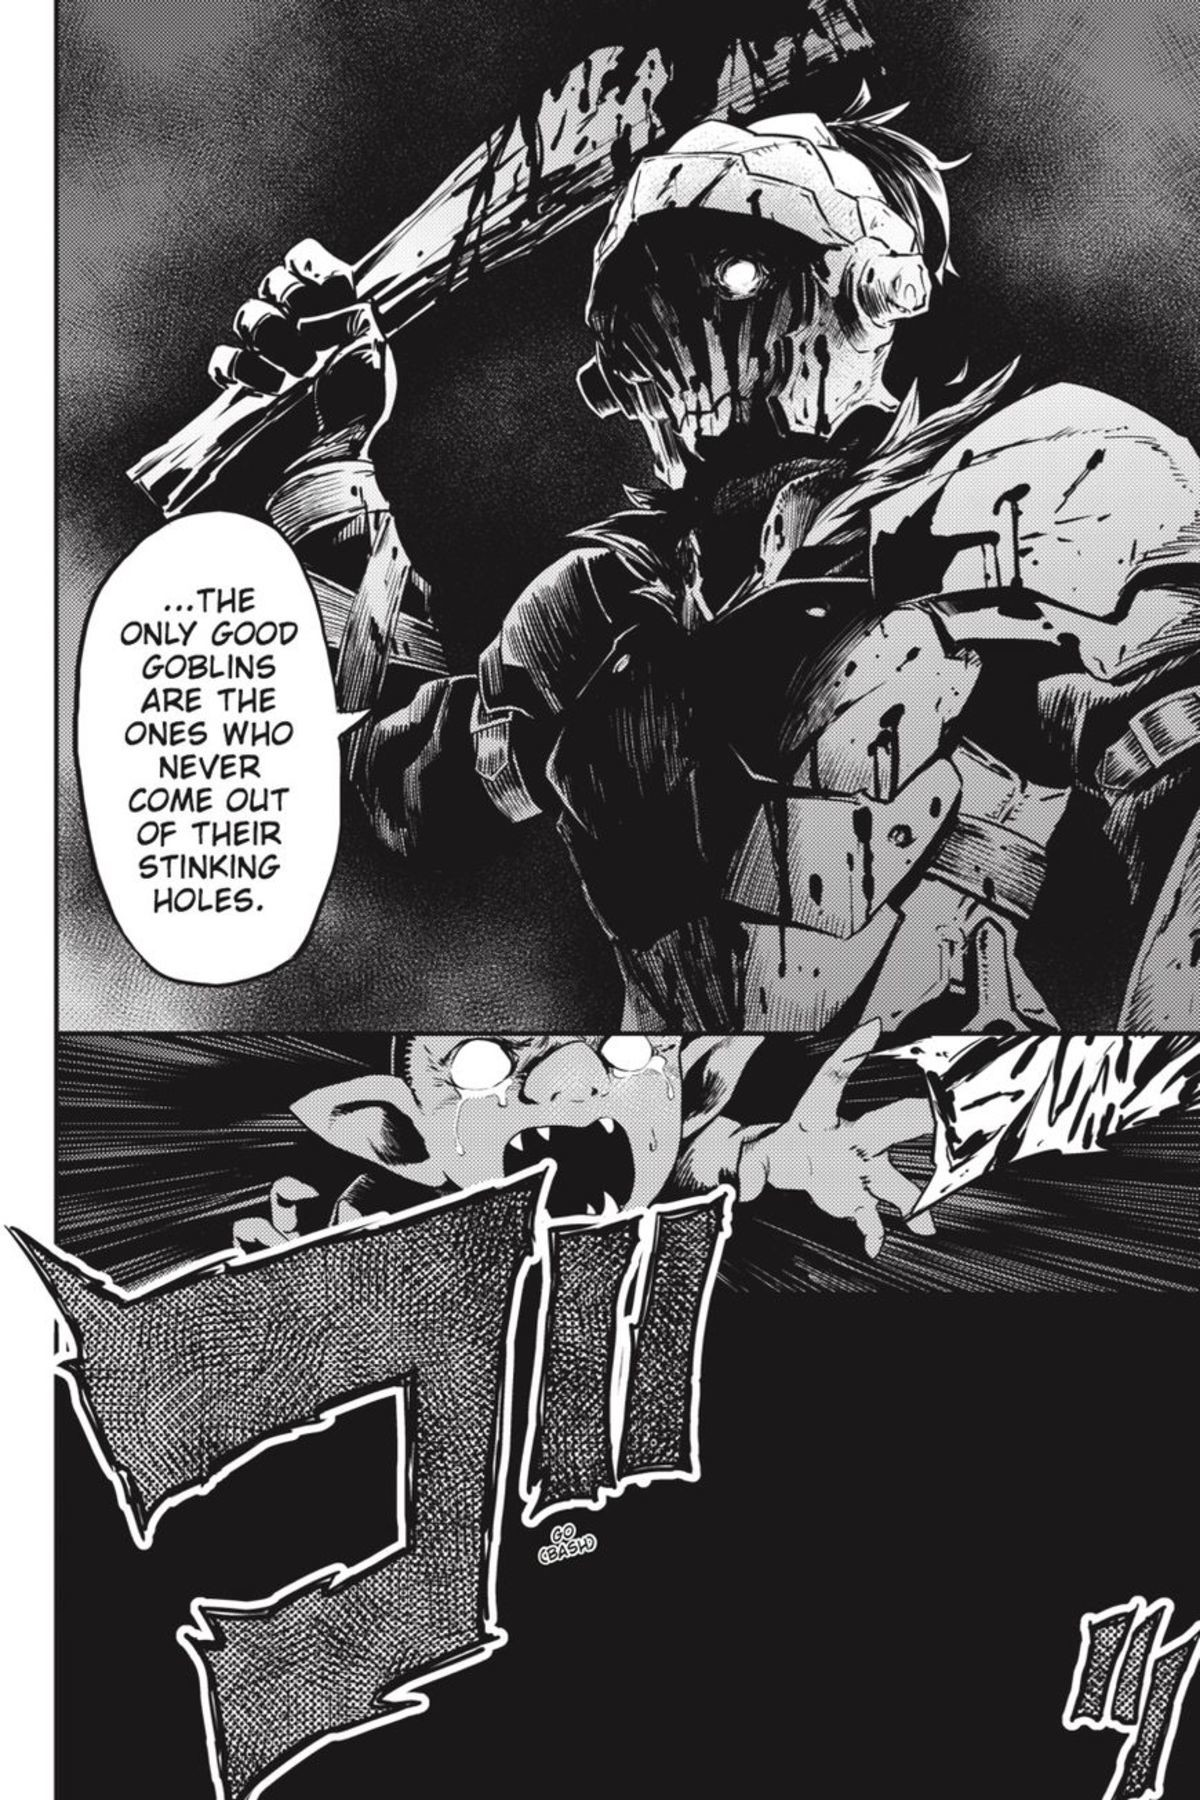 Goblin Slayer. Anyone know when the 5th volume of Goblin Slayer is going to be translated? I thought the protagonist was cool so I read the manga and then all t